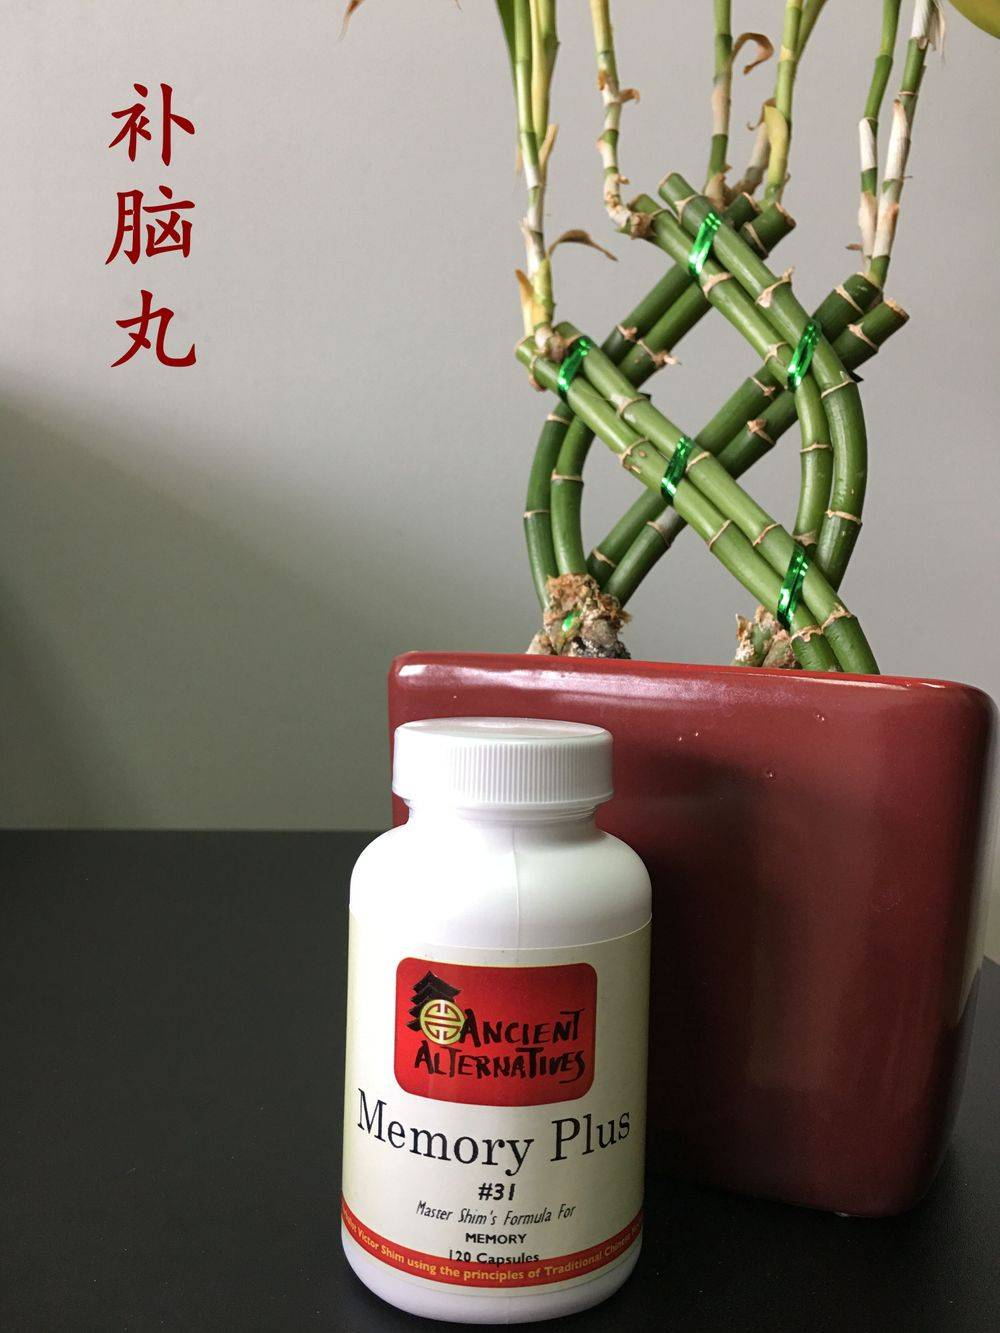 Improve memory, relieve mind fog and reduce hair loss. (120 capsules)